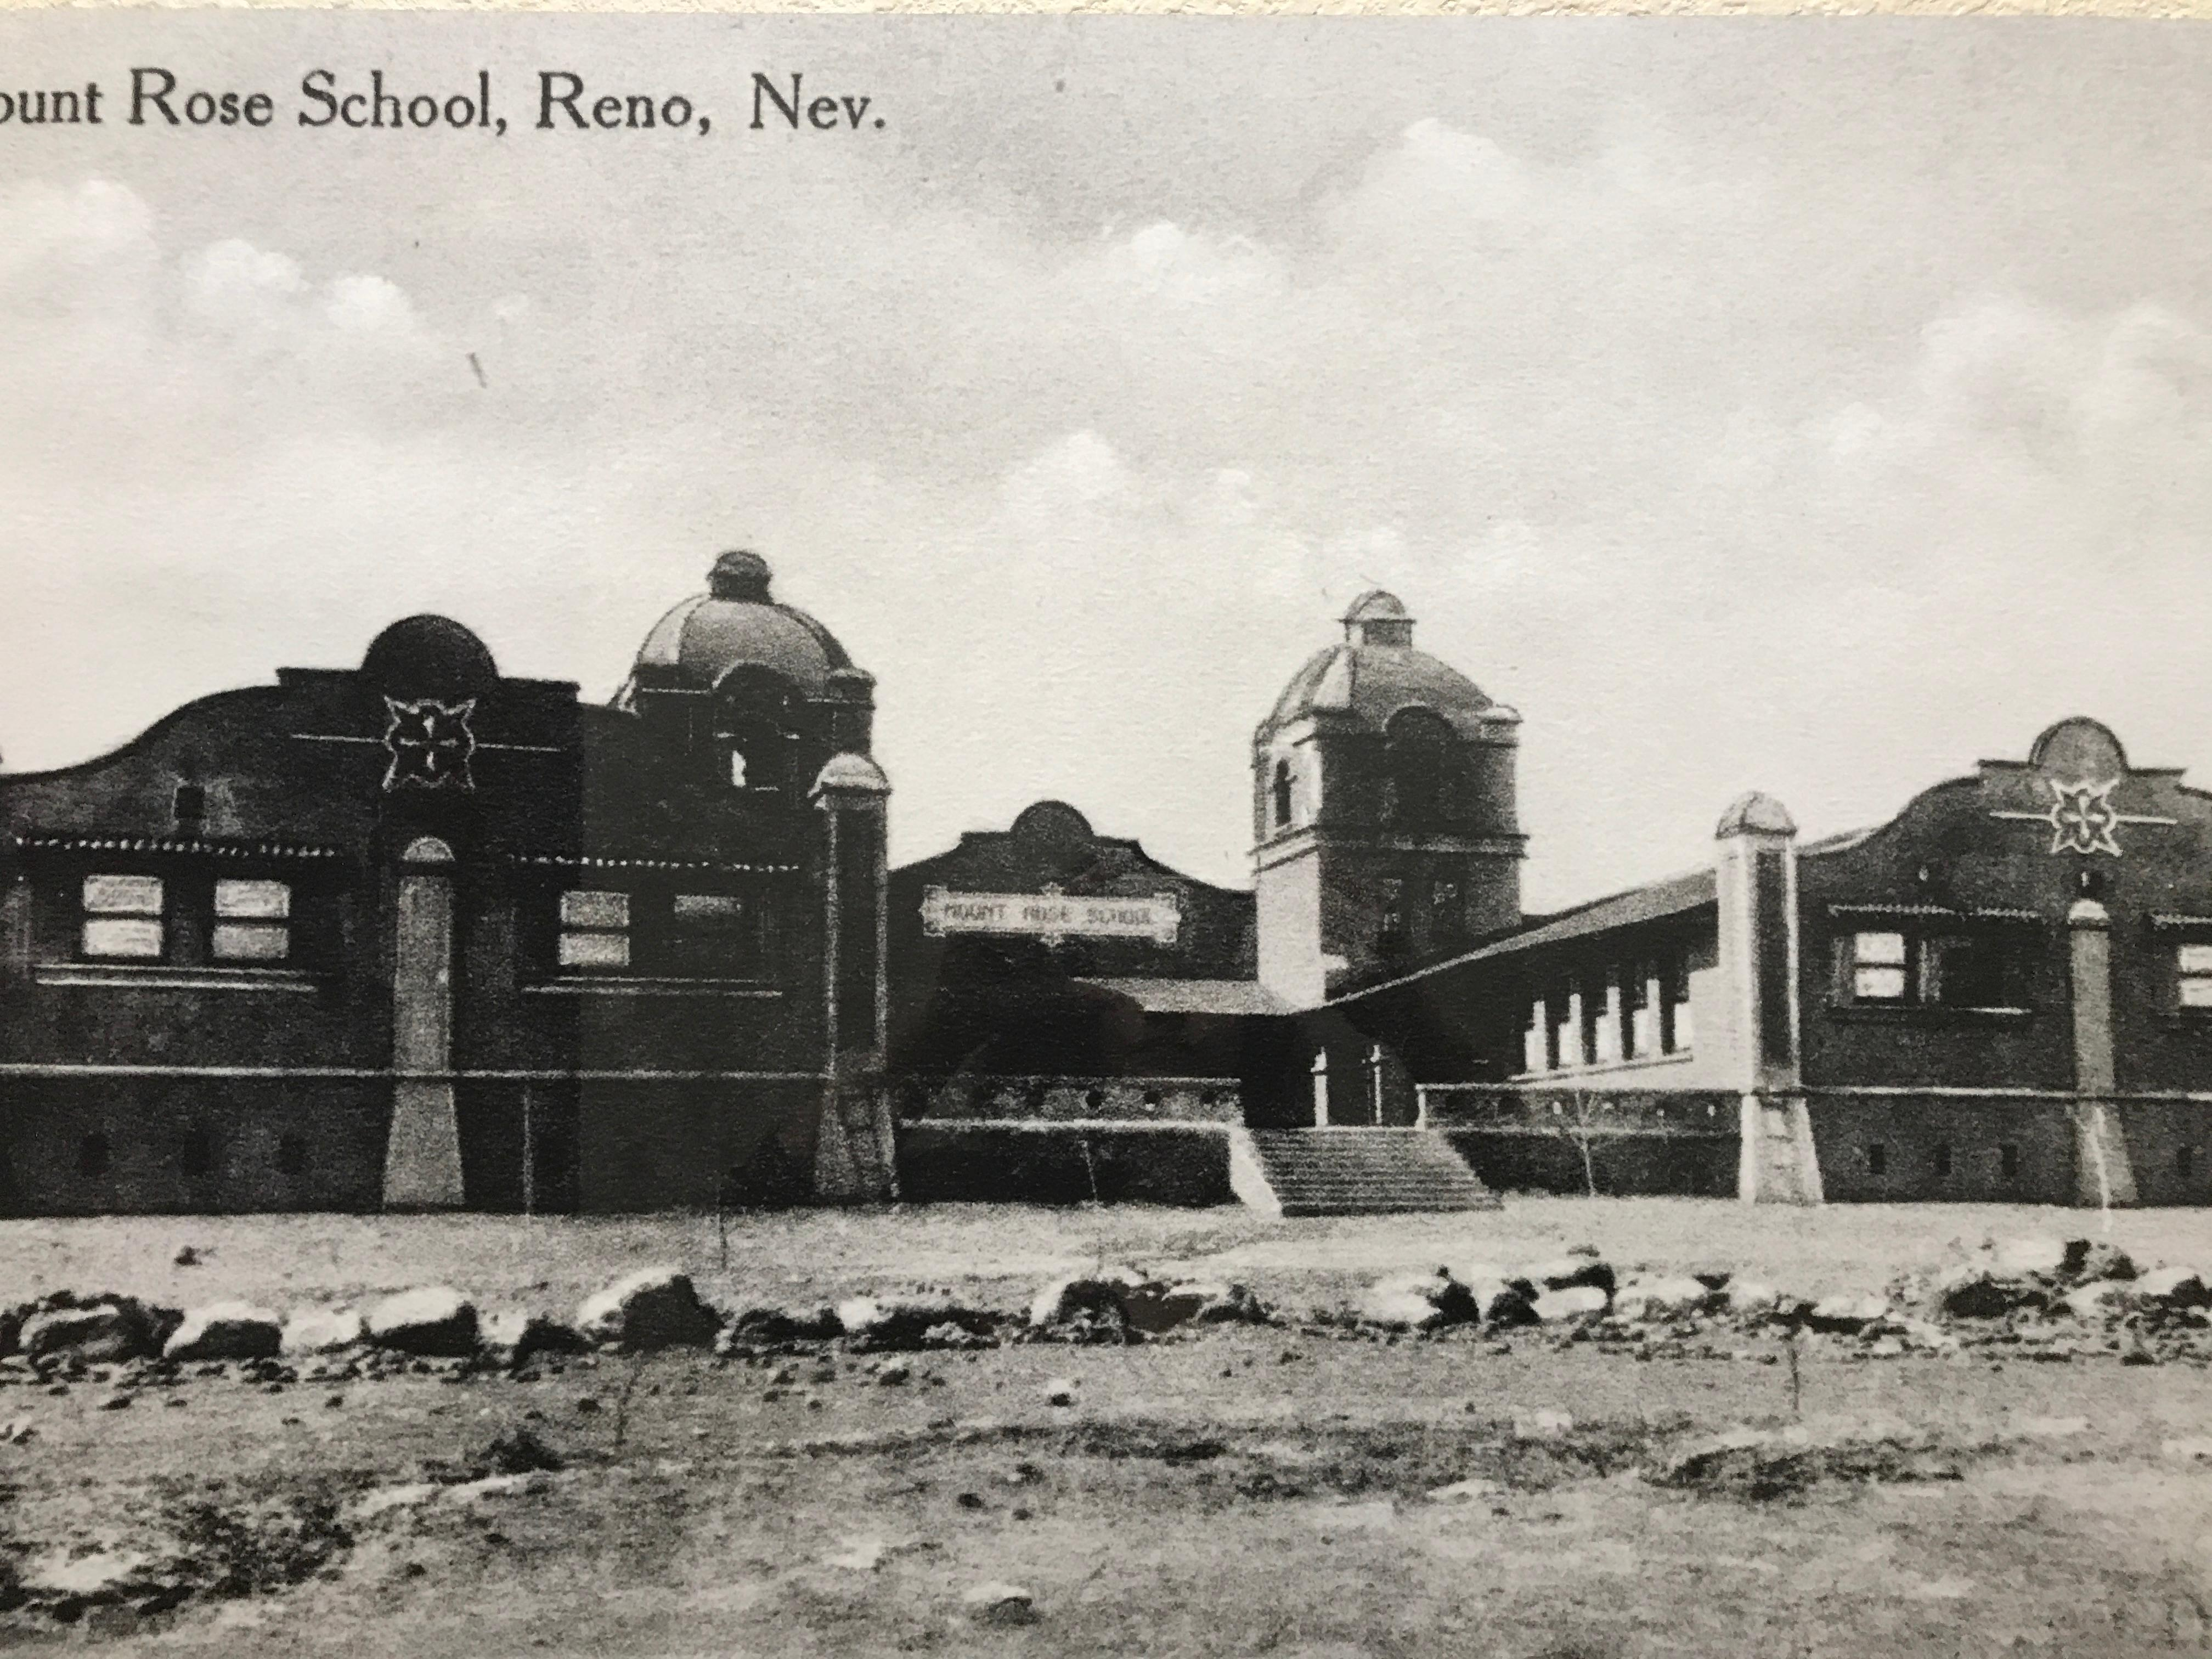 The Mount Rose Elementary School was constructed in 1912, on a large open field at what was then the southern edge of Reno. Mount Rose School served the southwest quadrant of Reno, an area generally known today as the Old Southwest. The school still stands today located on Arlington Street. (Photo courtesy: Nevada Historical Society)